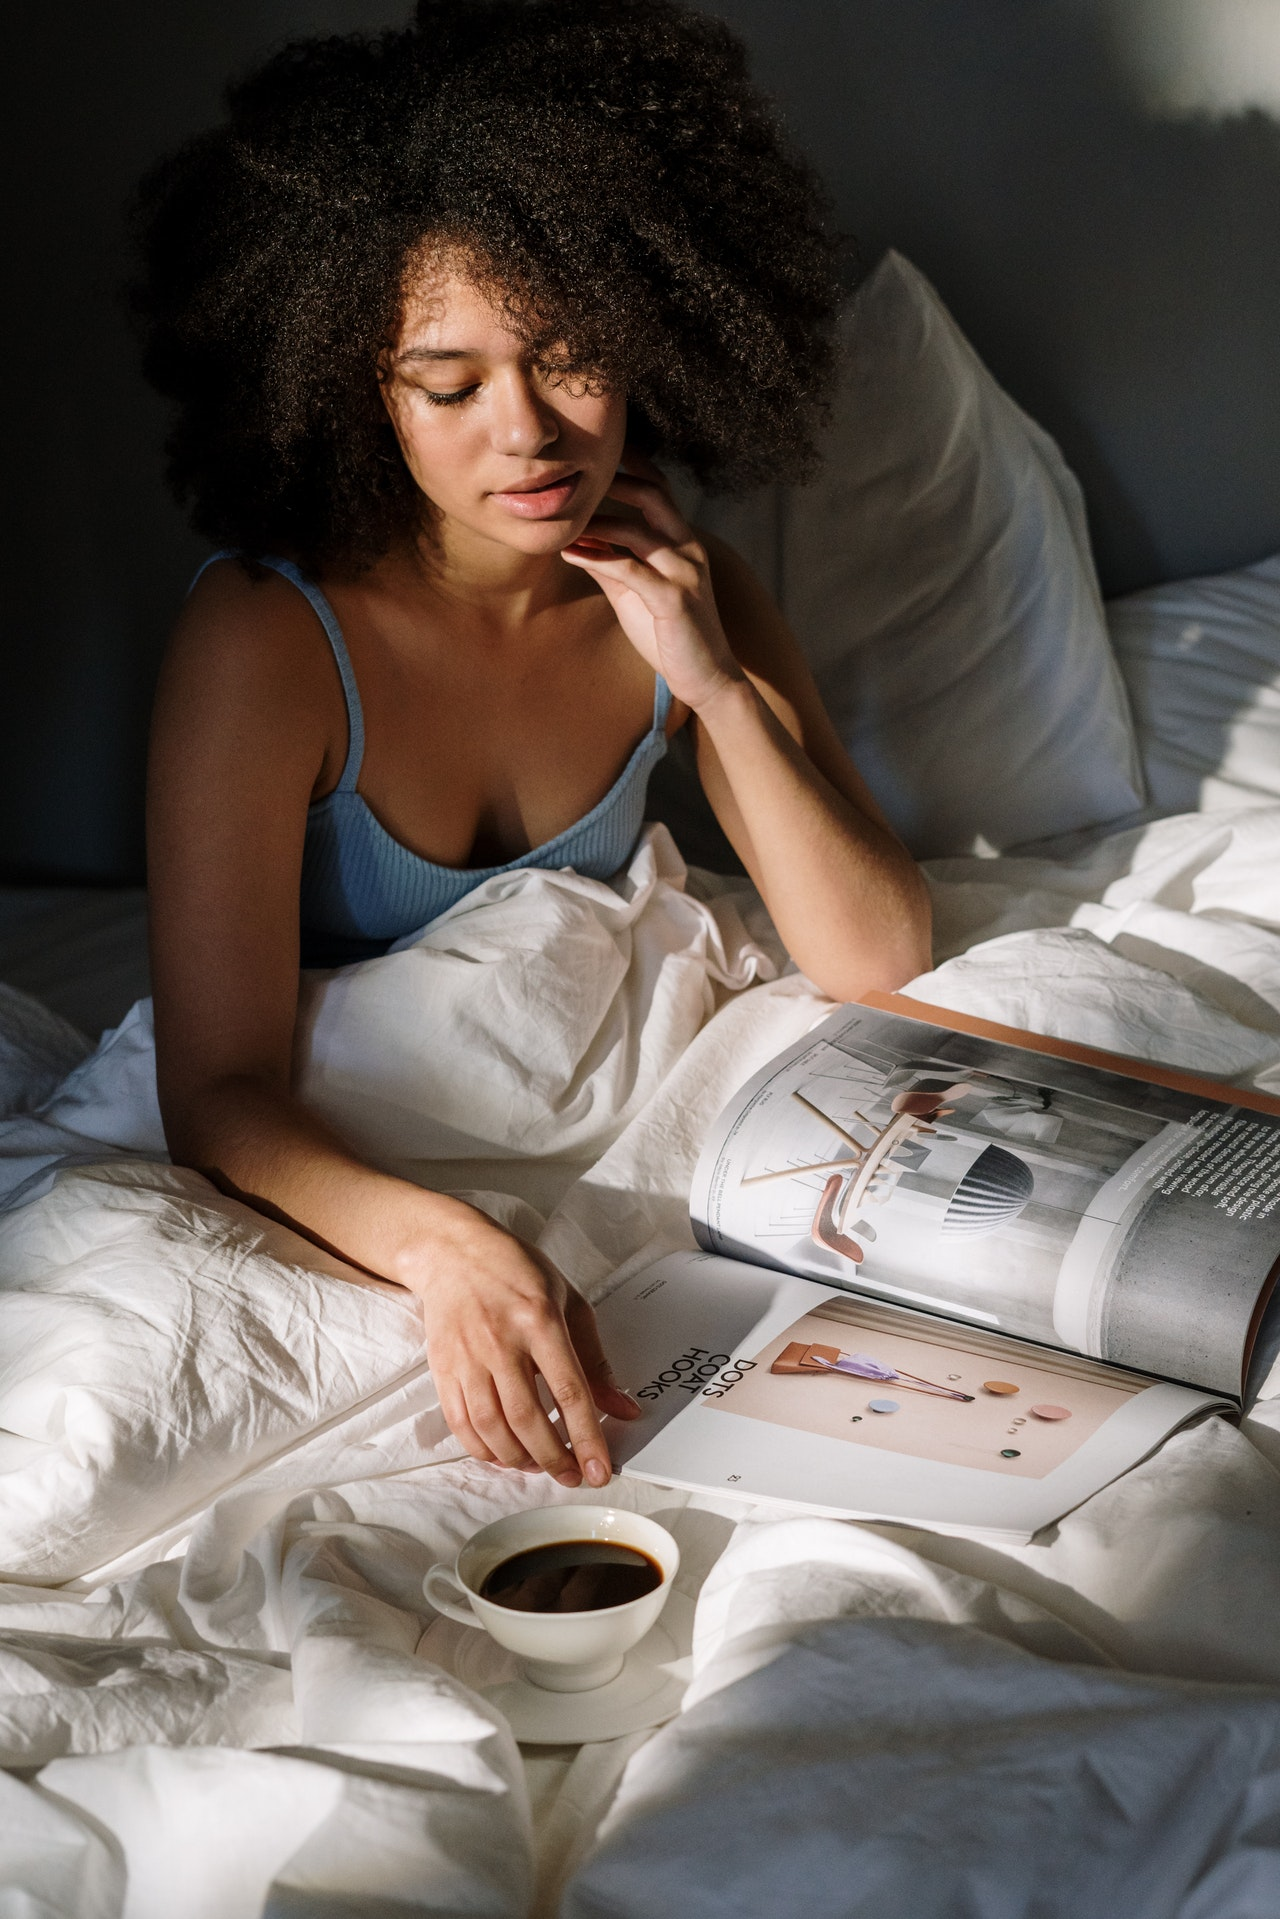 Girl with curly, black hair reading magazine with a cup of coffee in a bed in relaxing mood